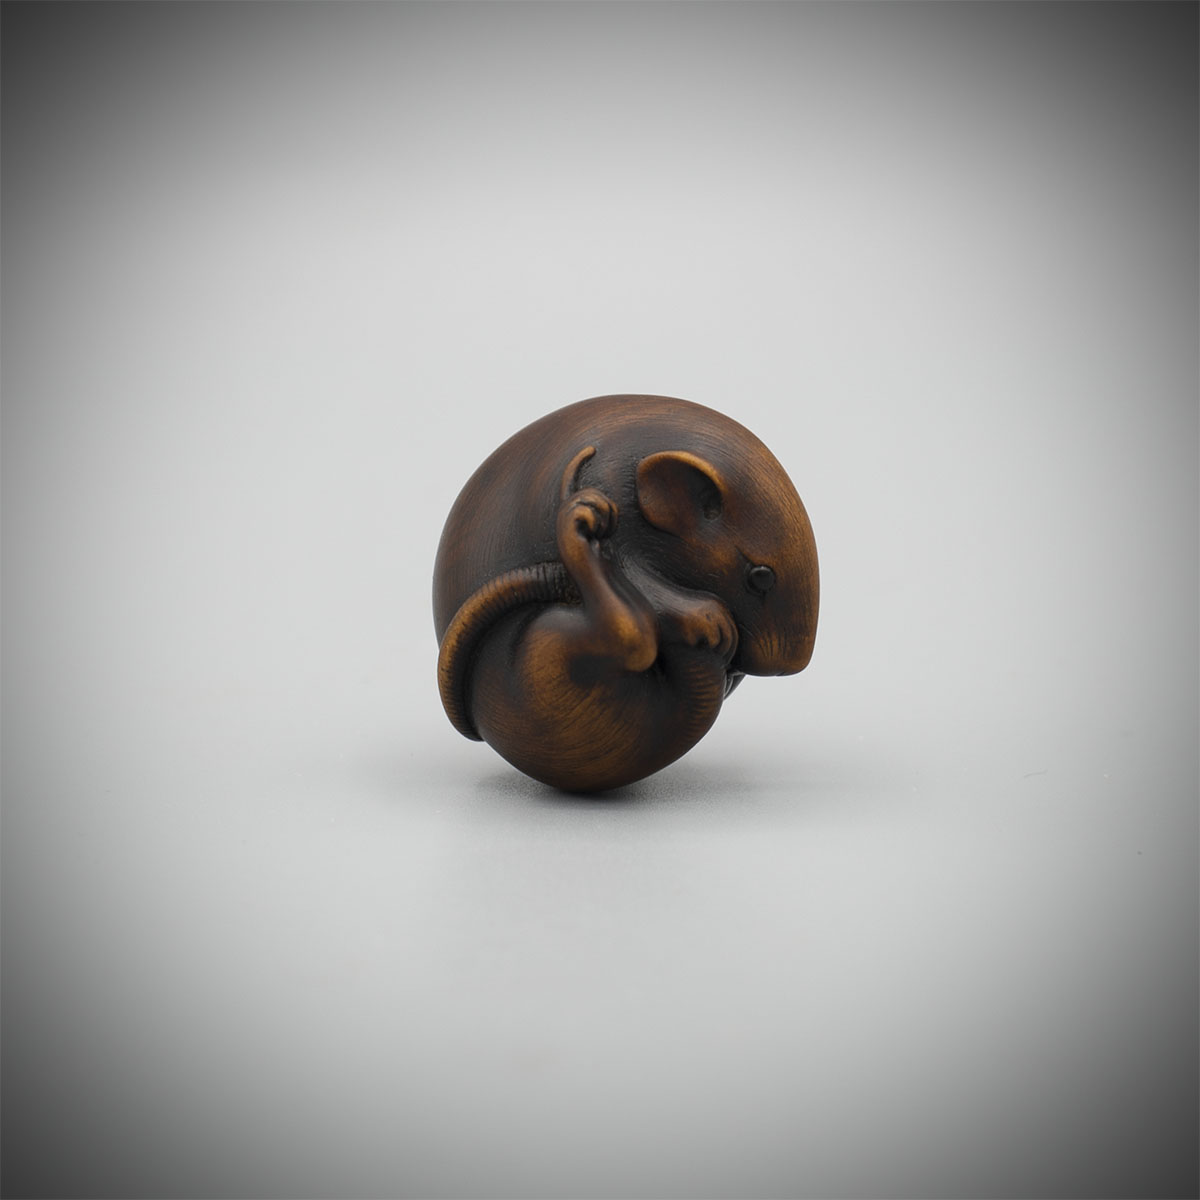 Small But Exquisite Stained Boxwood Netsuke of a Rat by Ikkan(Nagoya, 1817- 1893),MR3302_v1